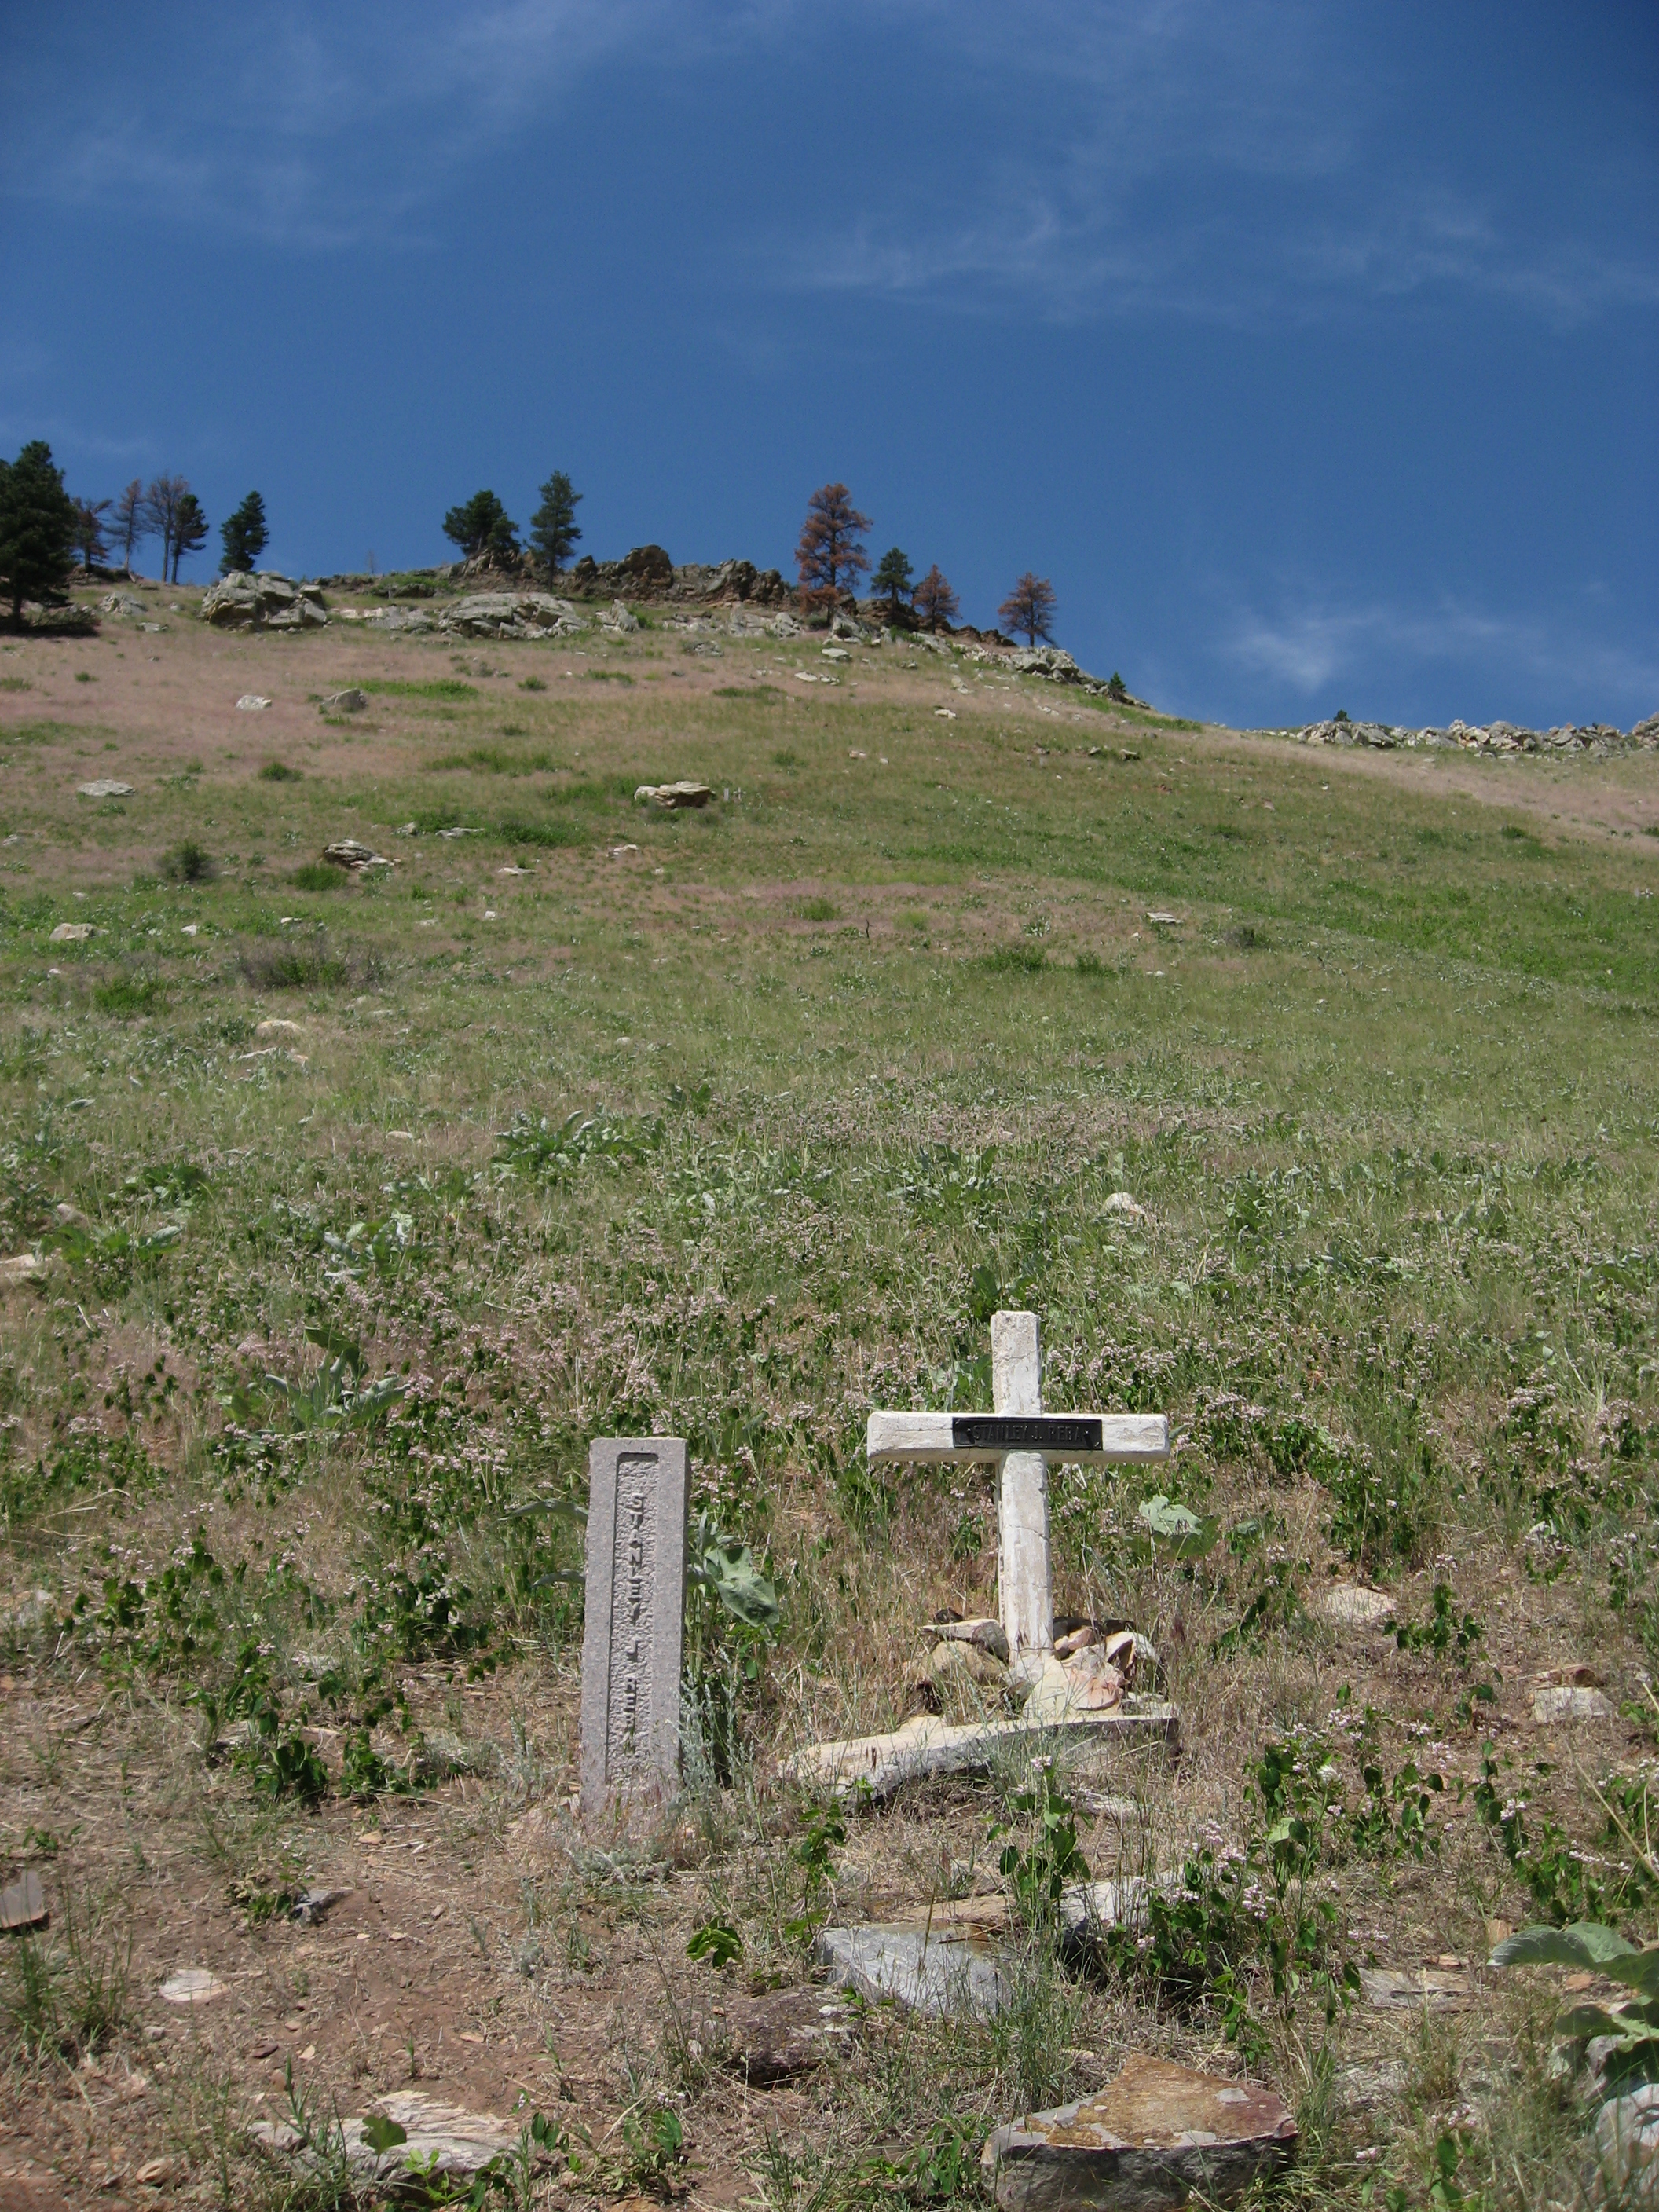 The view from where Stanley Reba died, looking up toward where Sallee and Rumsey went through the rocks to safety.